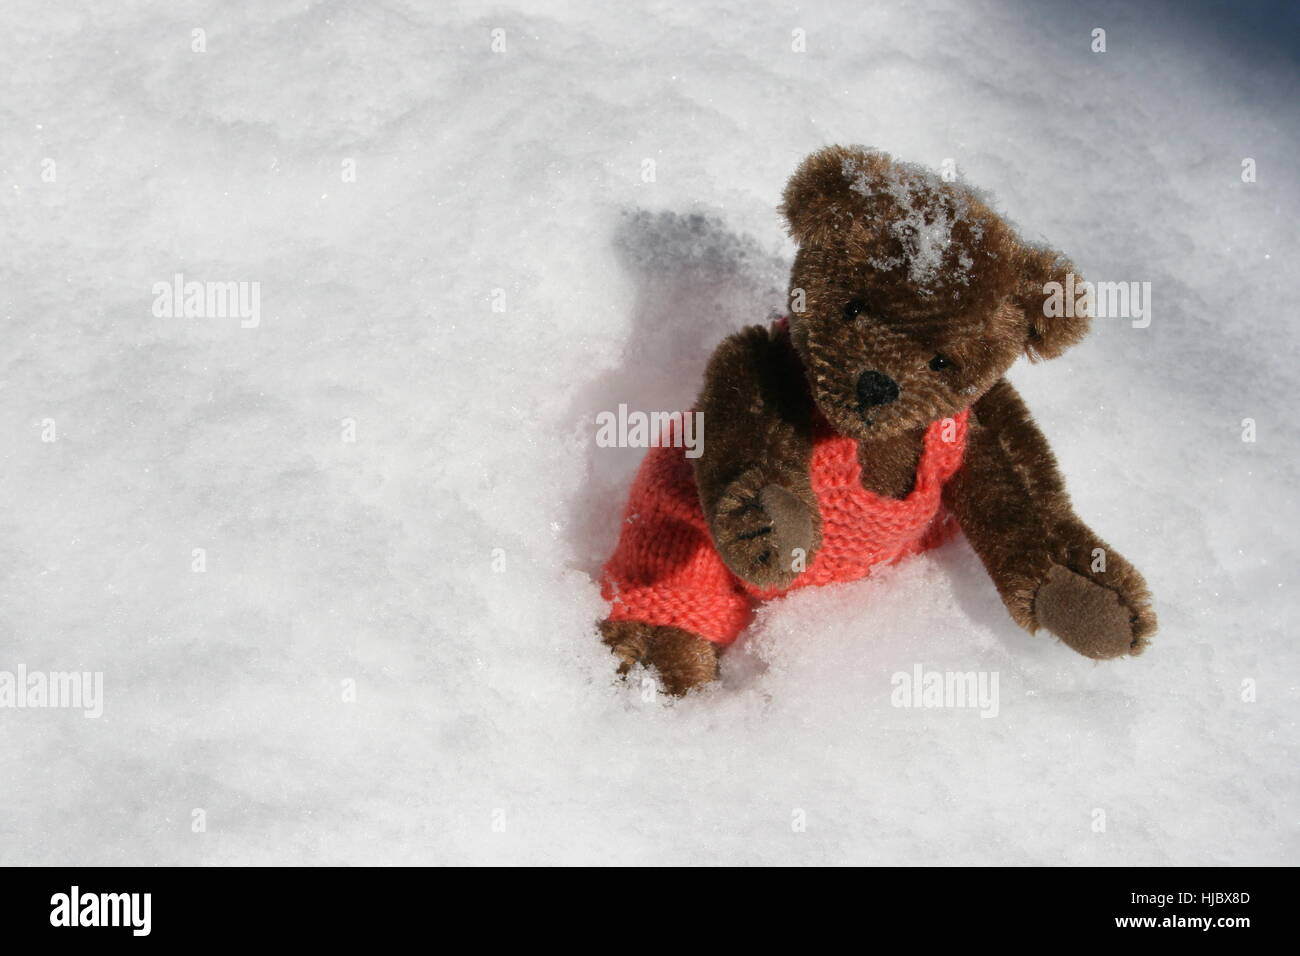 Winter bear cold teddy teddy bear teddybear cash cold cash winter bear cold teddy teddy bear teddybear cash cold cash money in altavistaventures Images